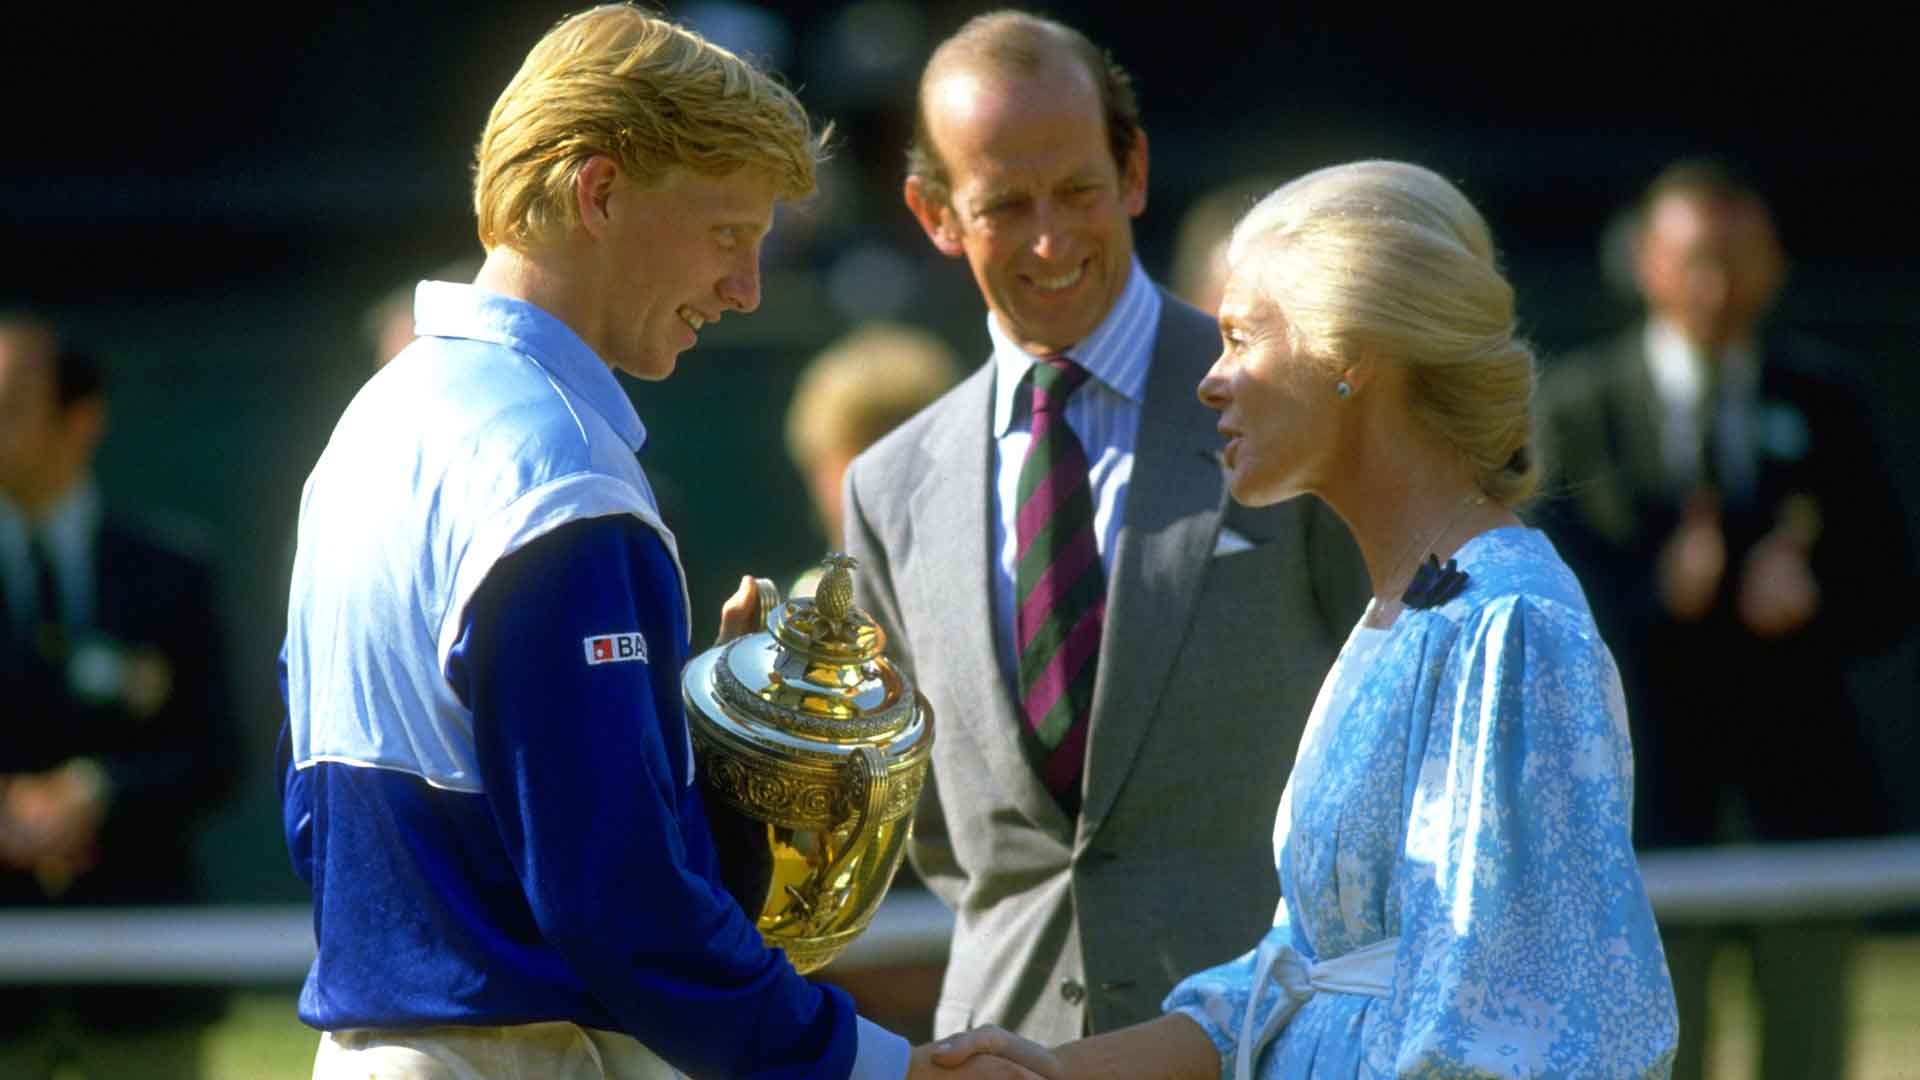 Boris Becker beats Kevin Curren to lift the 1985 Gentlemen's Singles title at Wimbledon.